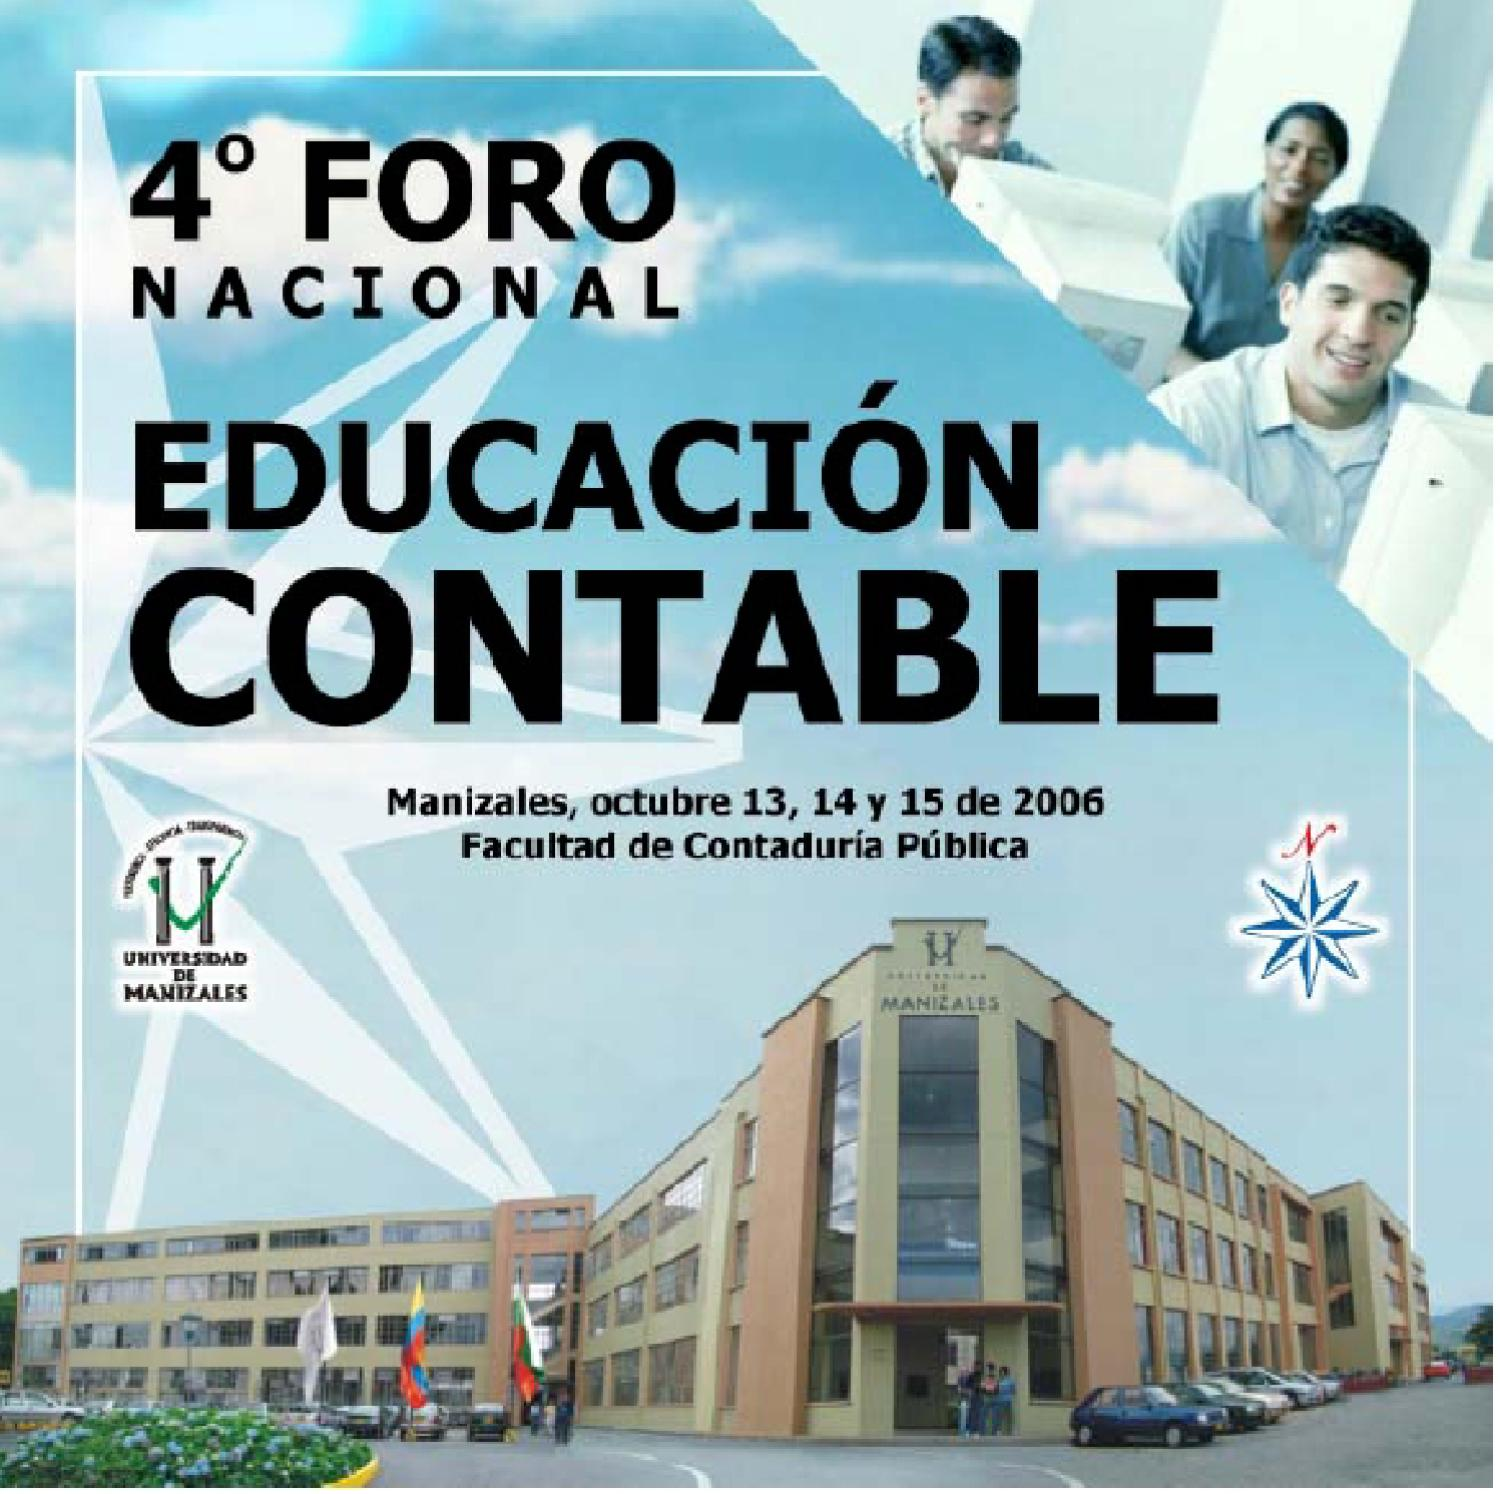 Educación contable by camilo toro - issuu